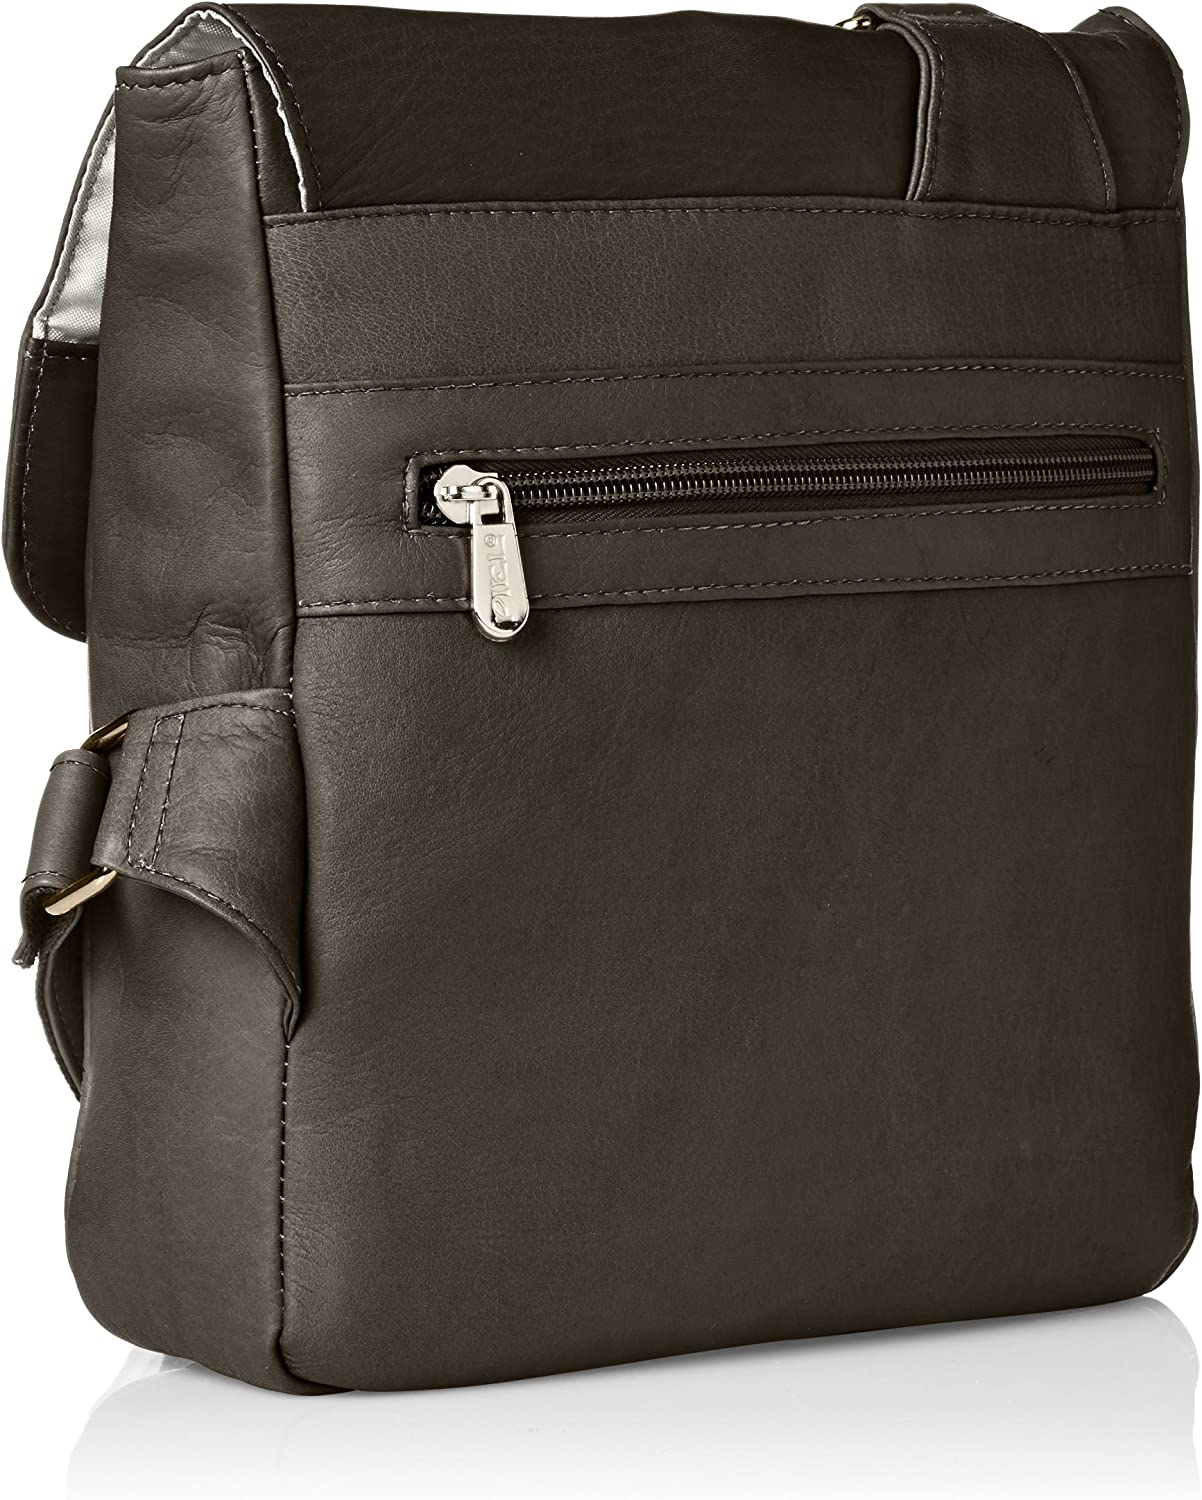 Saddle Piel Leather Tablet Cross Body Bag One Size